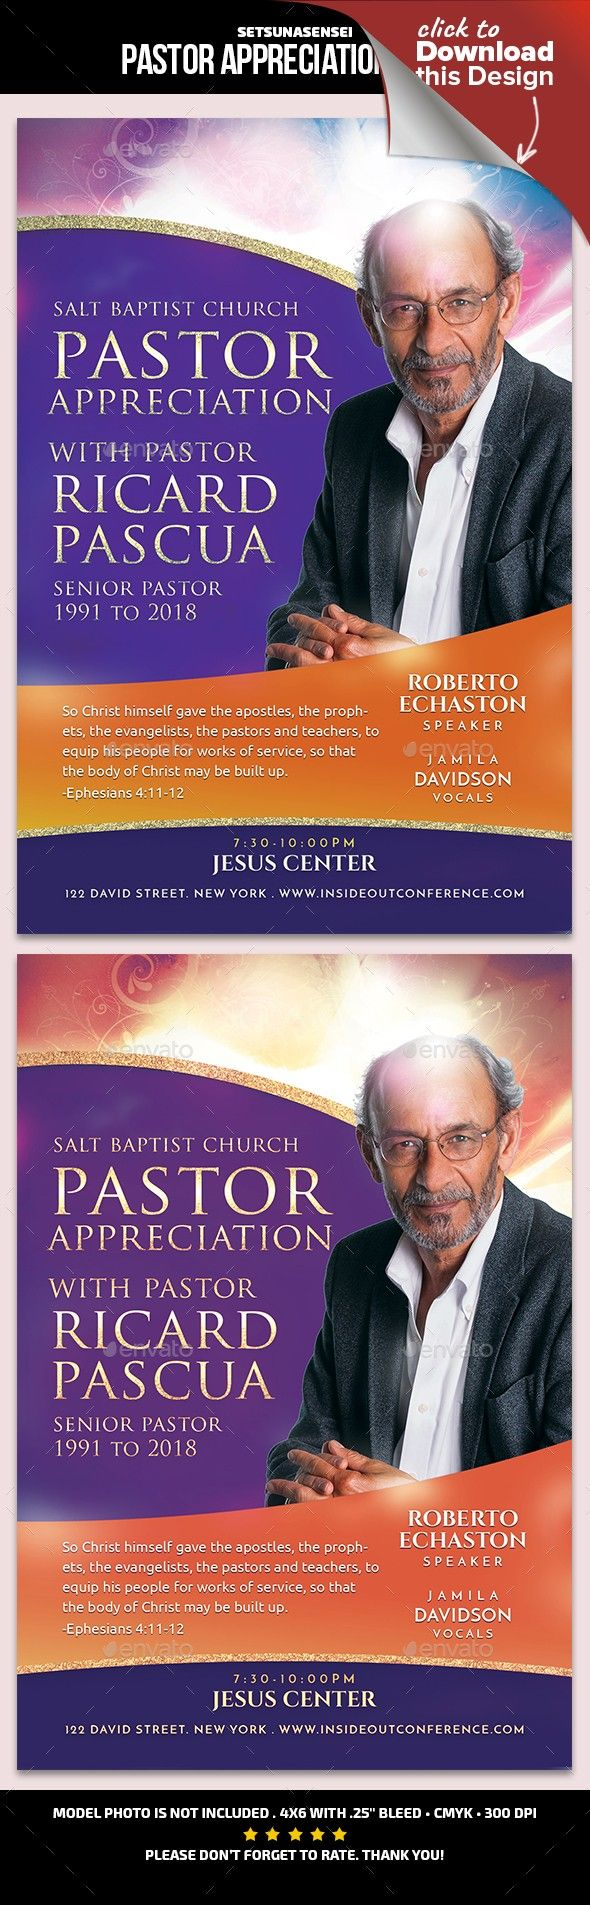 Pastor Appreciation Flyer Layout